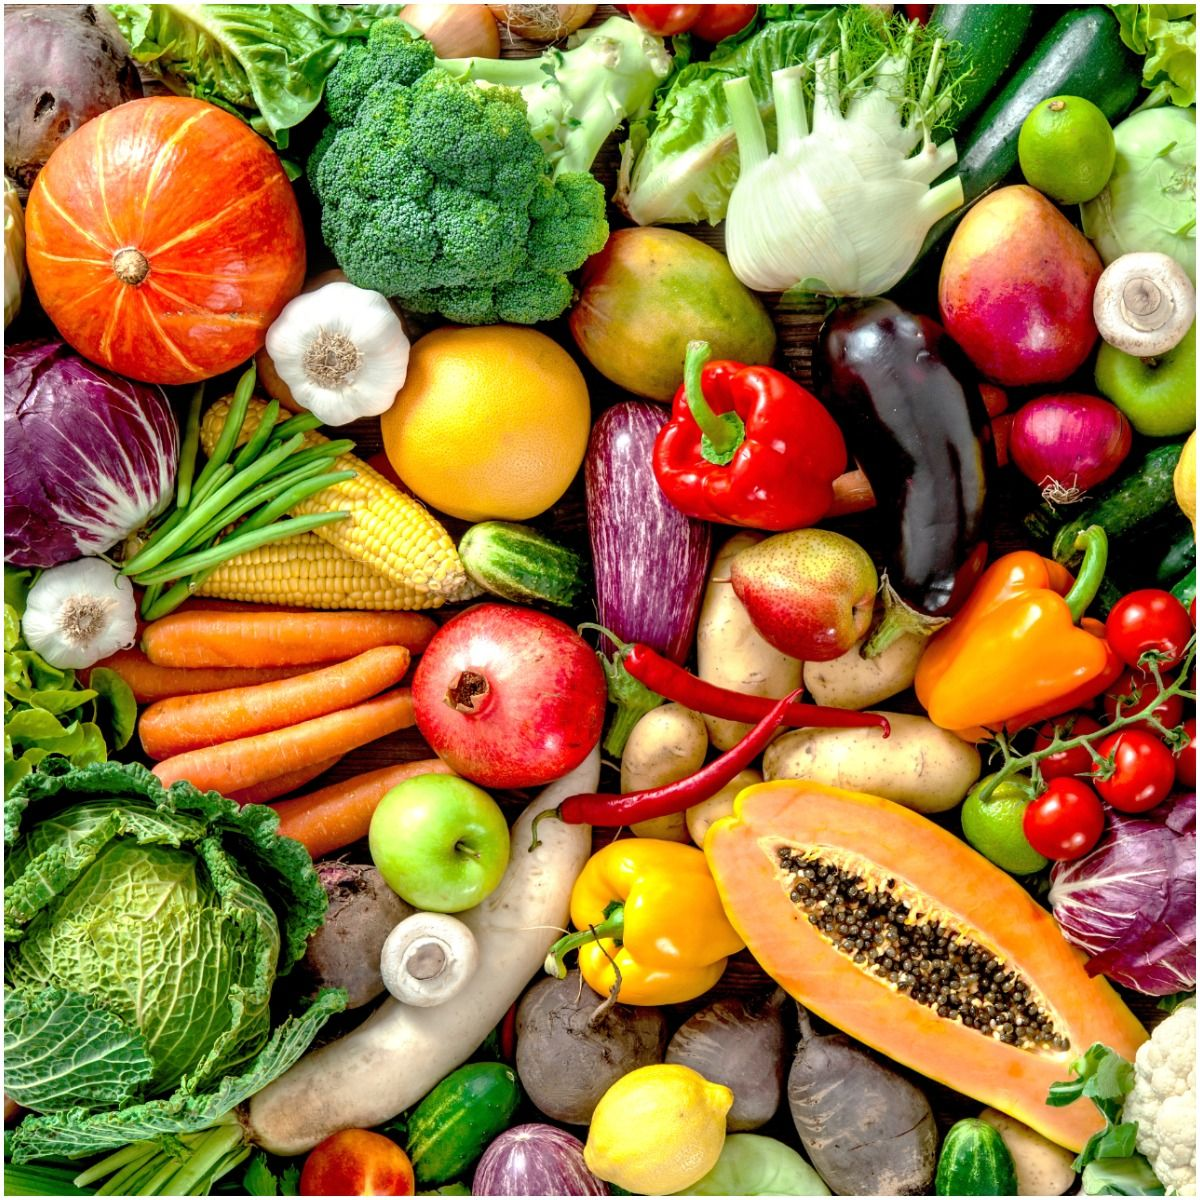 Nutrition fruits and veggies